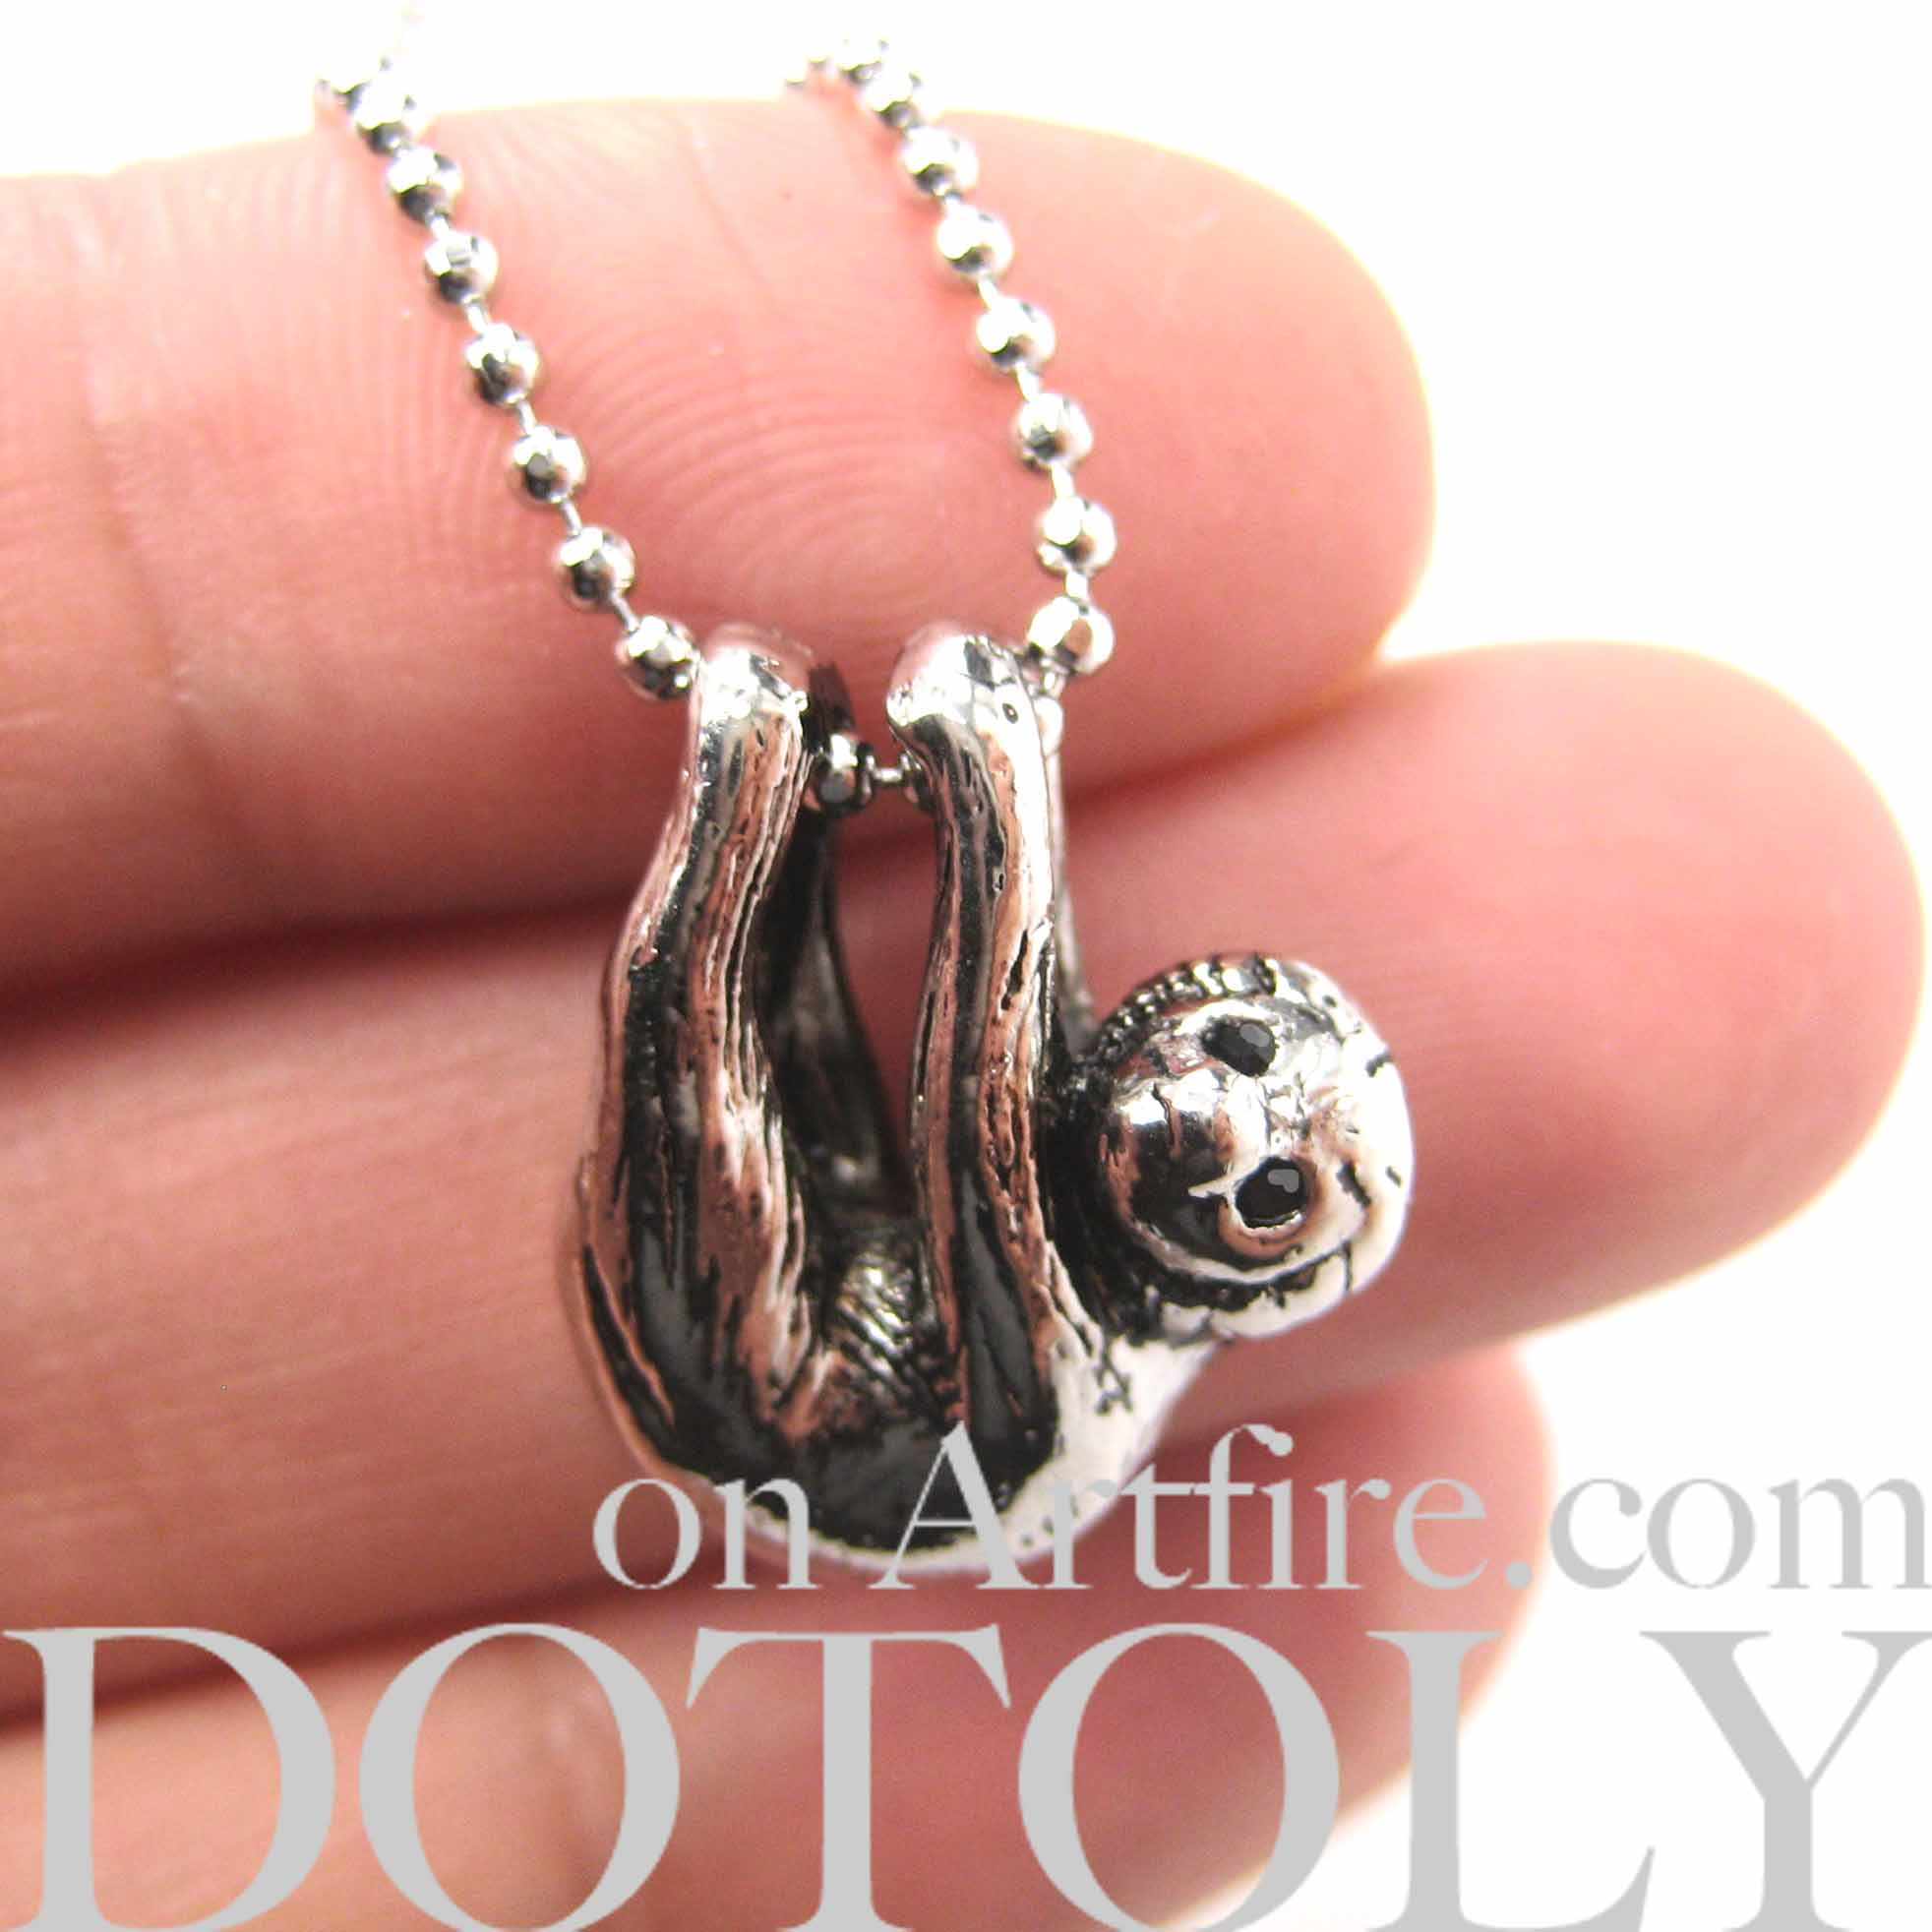 sloth-baby-animal-pendant-necklace